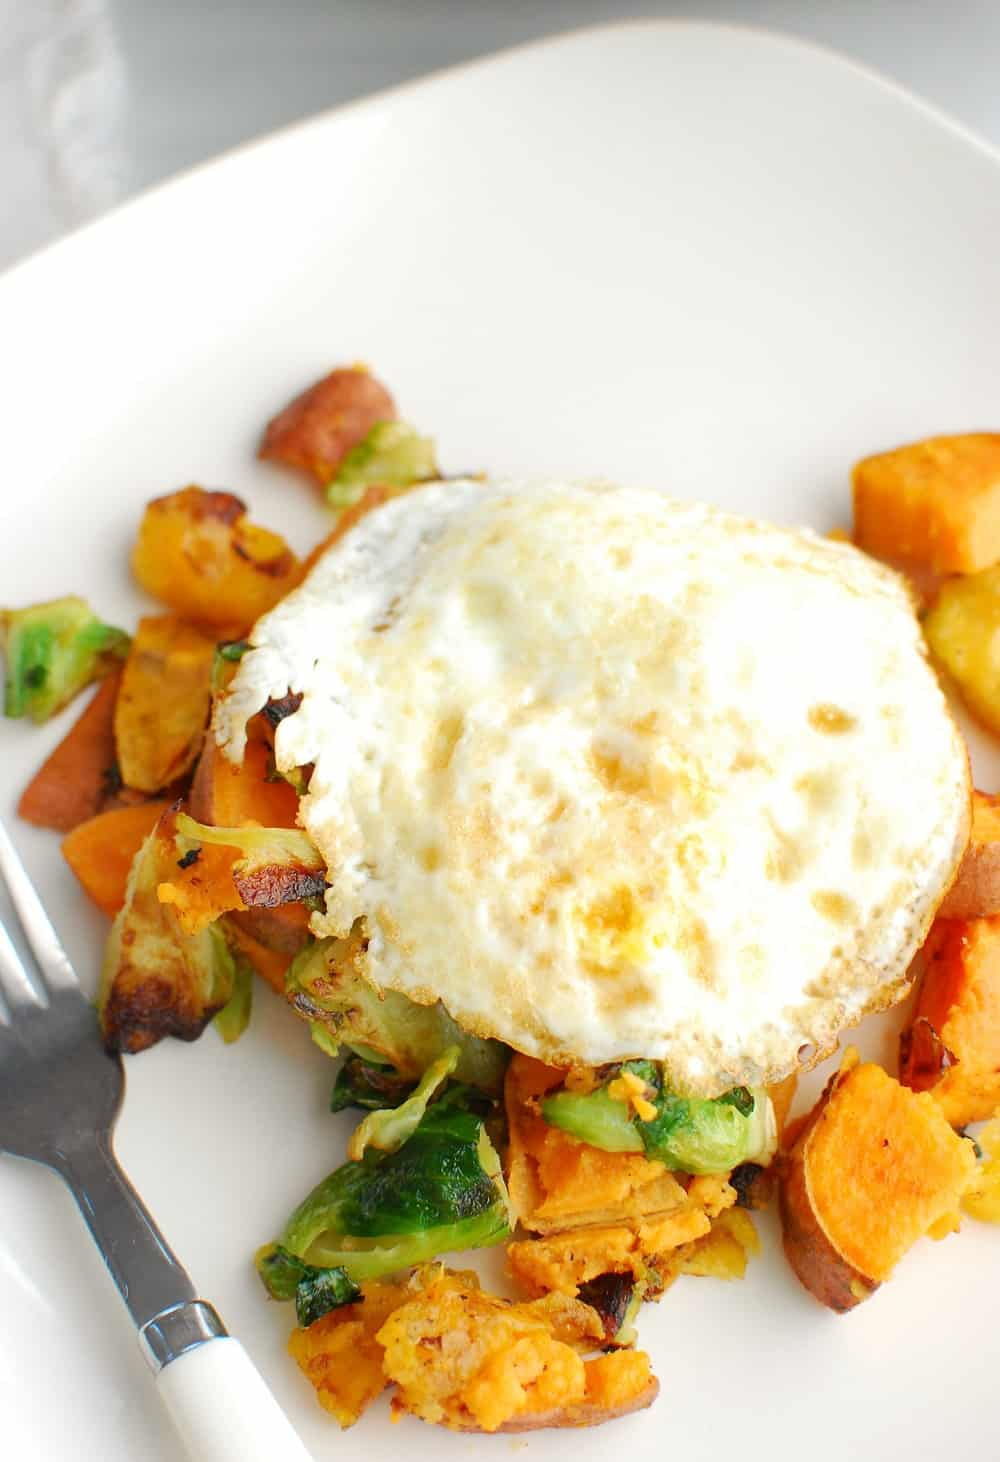 a plate with sweet potatoes, brussels sprouts, plantains, and an egg on top